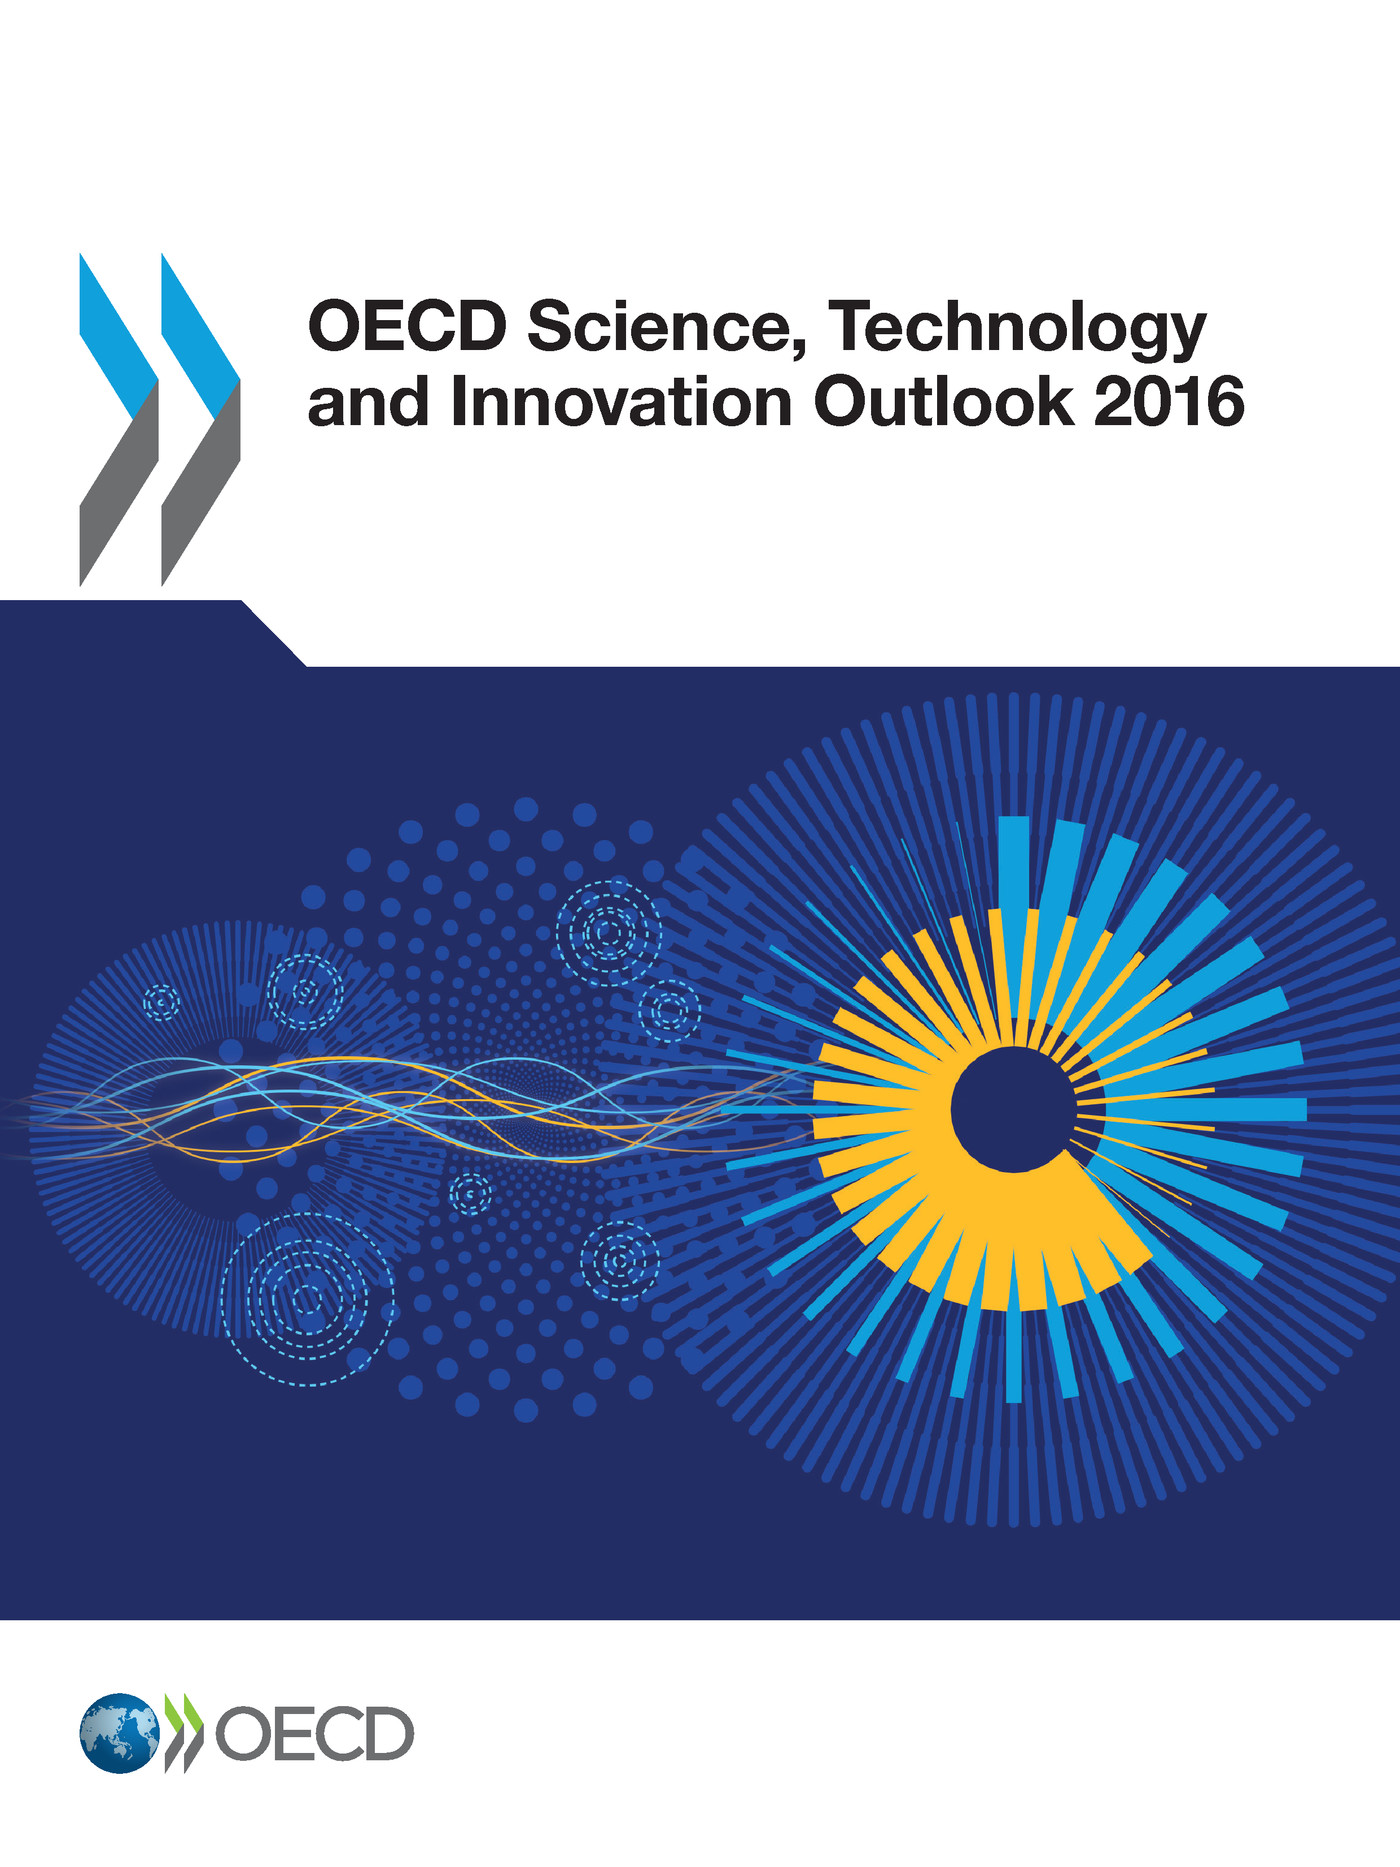 OECD Science, Technology and Innovation Outlook 2016 De  Collectif - OCDE / OECD